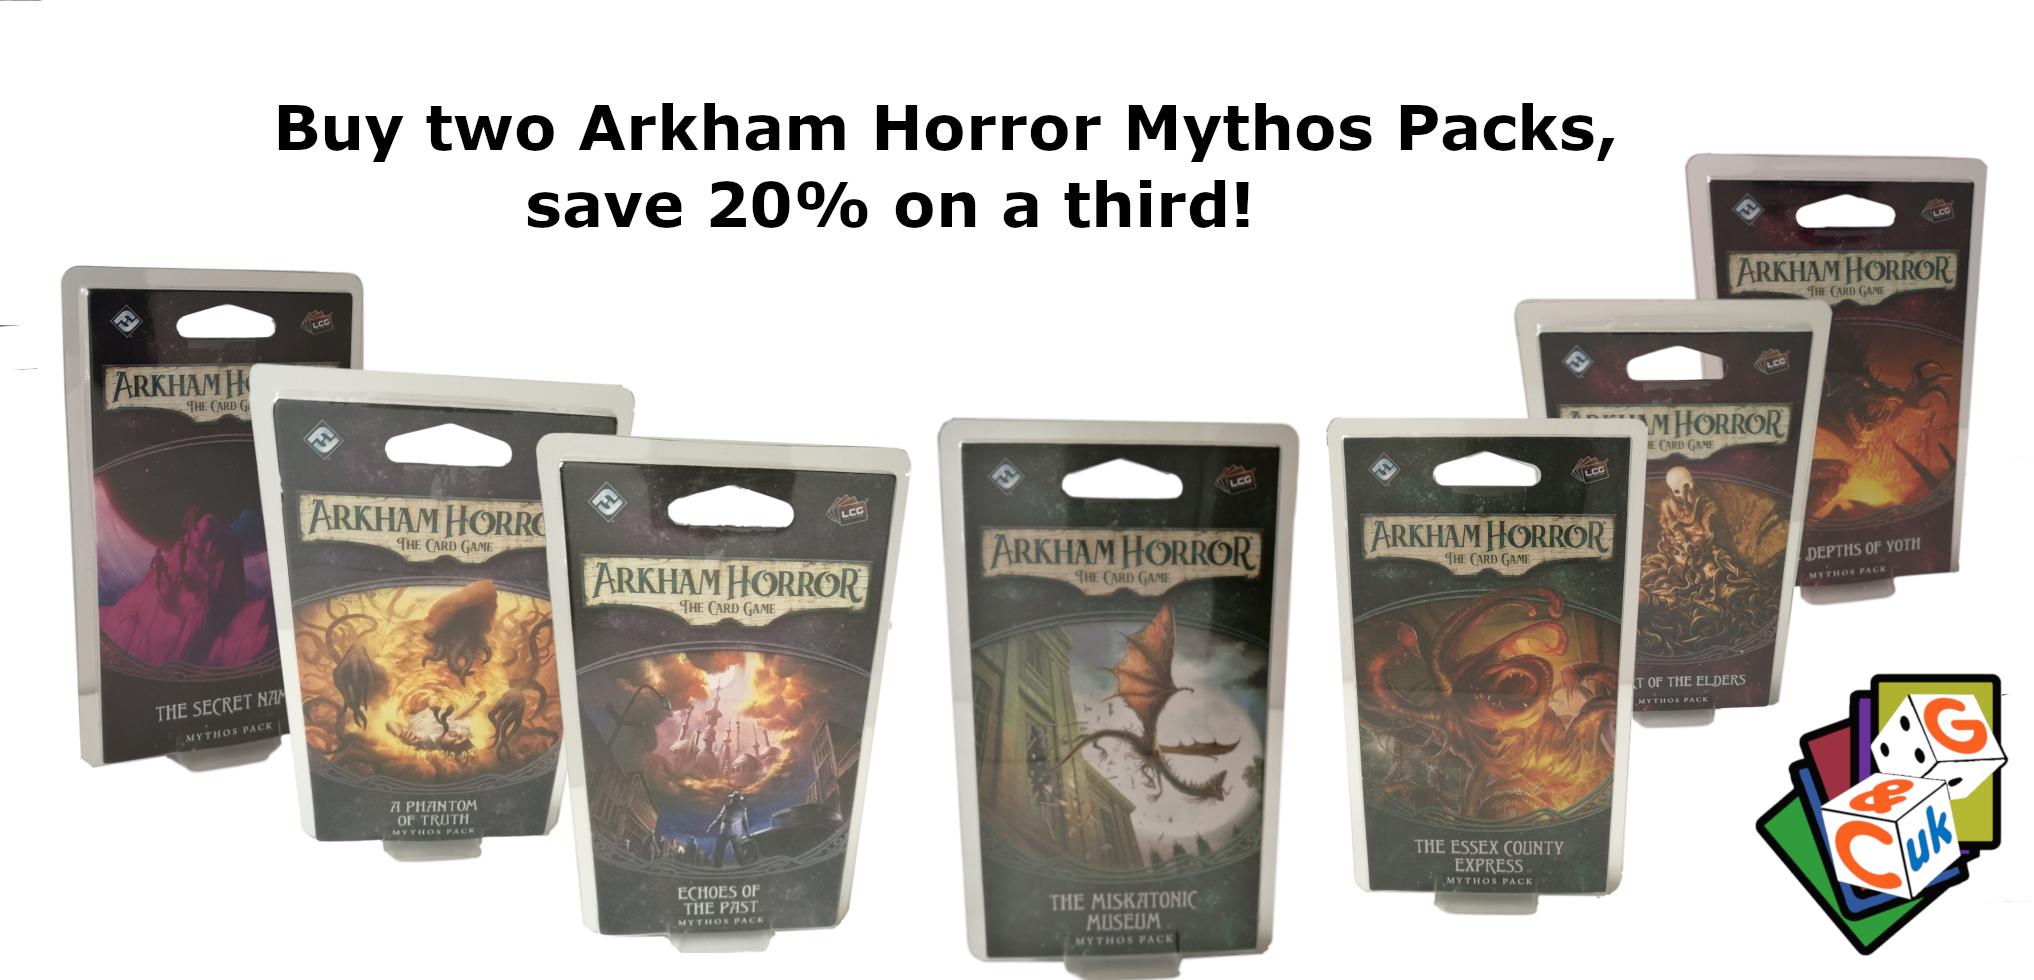 Arkham Horror Card Game Mythos Pack Offer - Buy two, save 20% on a third